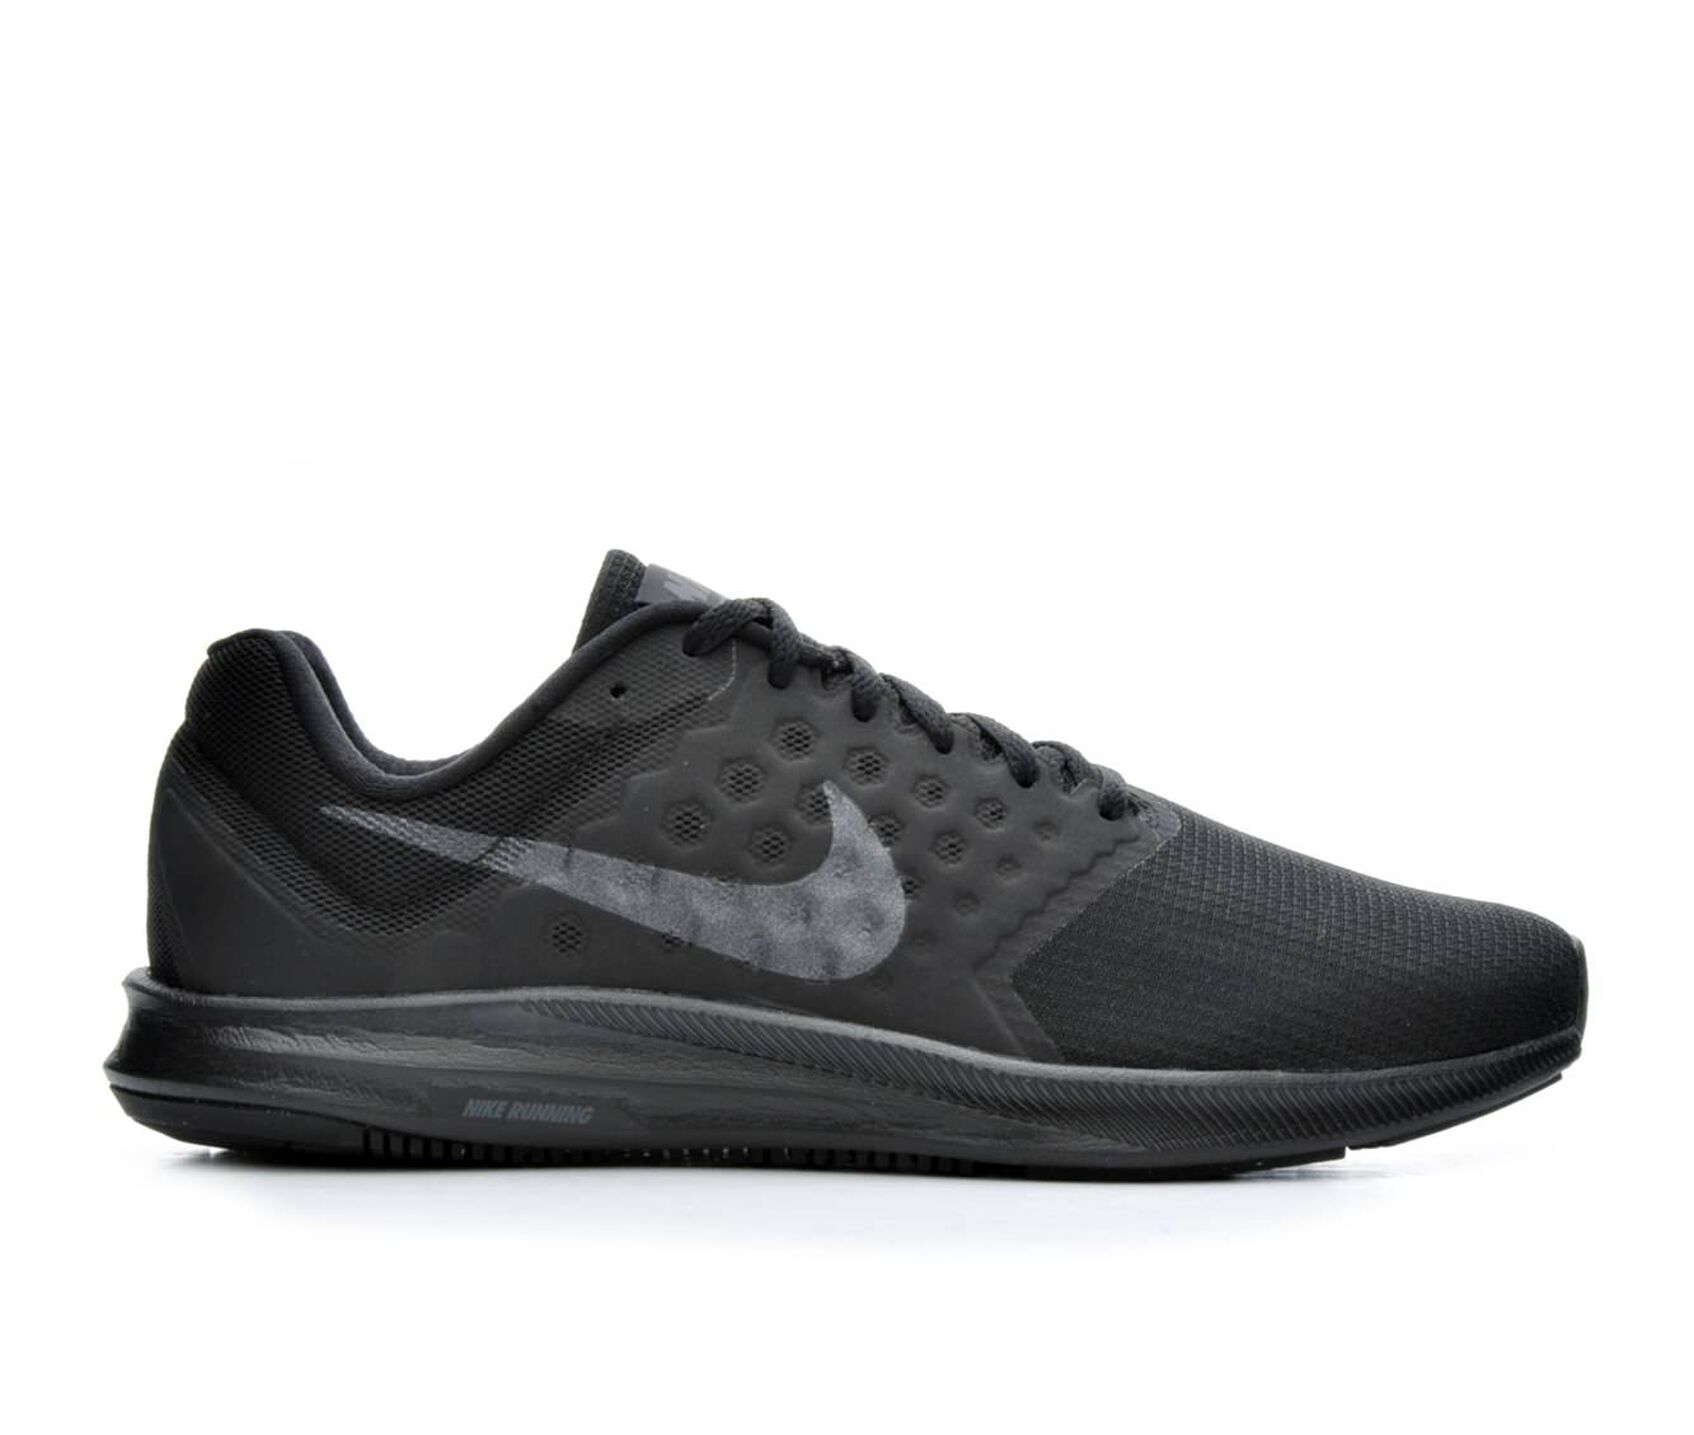 f7089450392 Men  39 s Nike Downshifter 7 Running Shoes. Previous